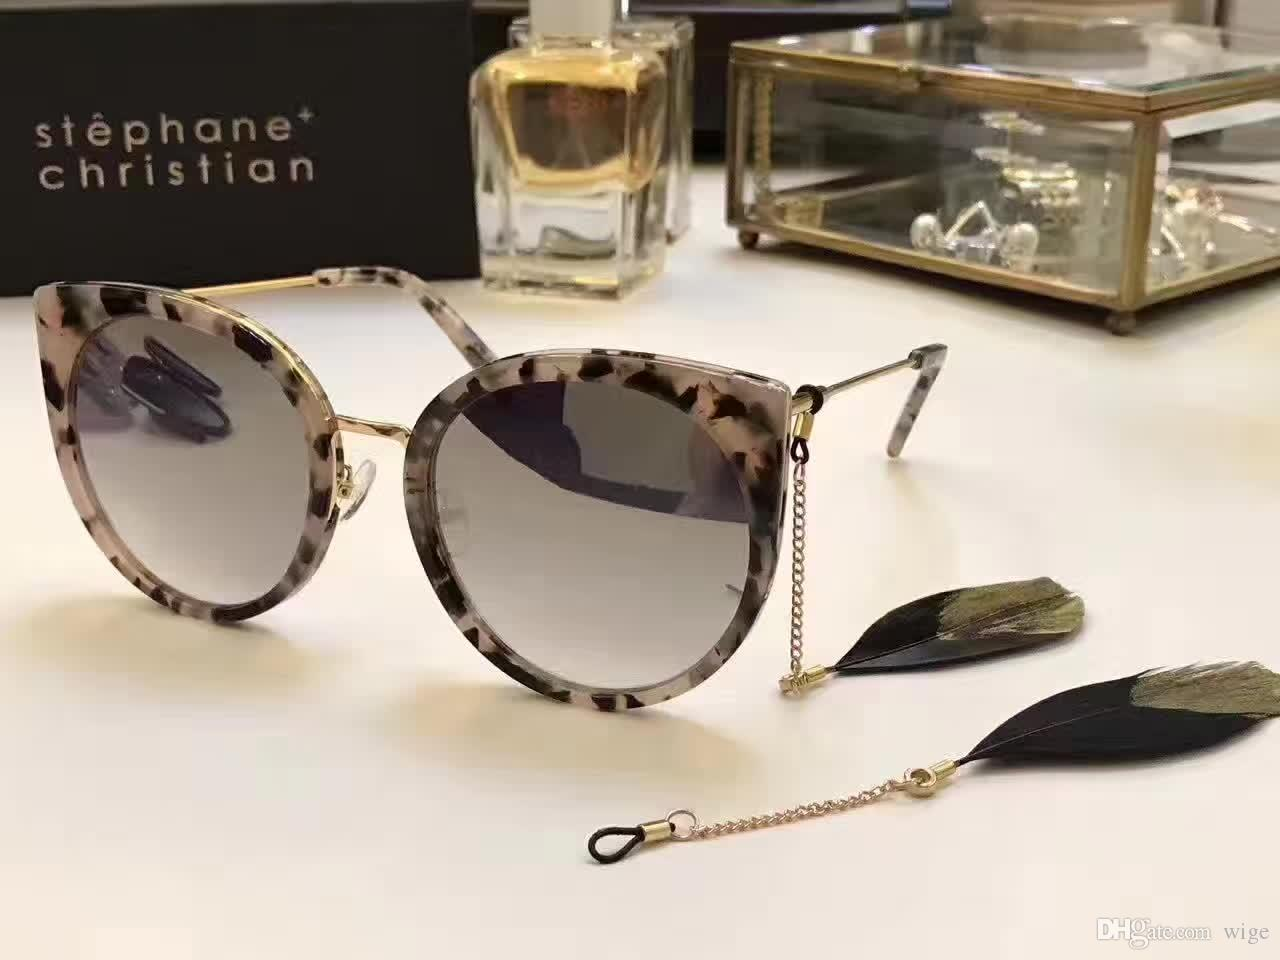 6e62a9acd5e4 Stephane Christian Cat Eye Sunglasses With Feather Designer Brand Sunglasses  Eyeglasses New With Box Wiley X Sunglasses Mirror Sunglasses From Wige